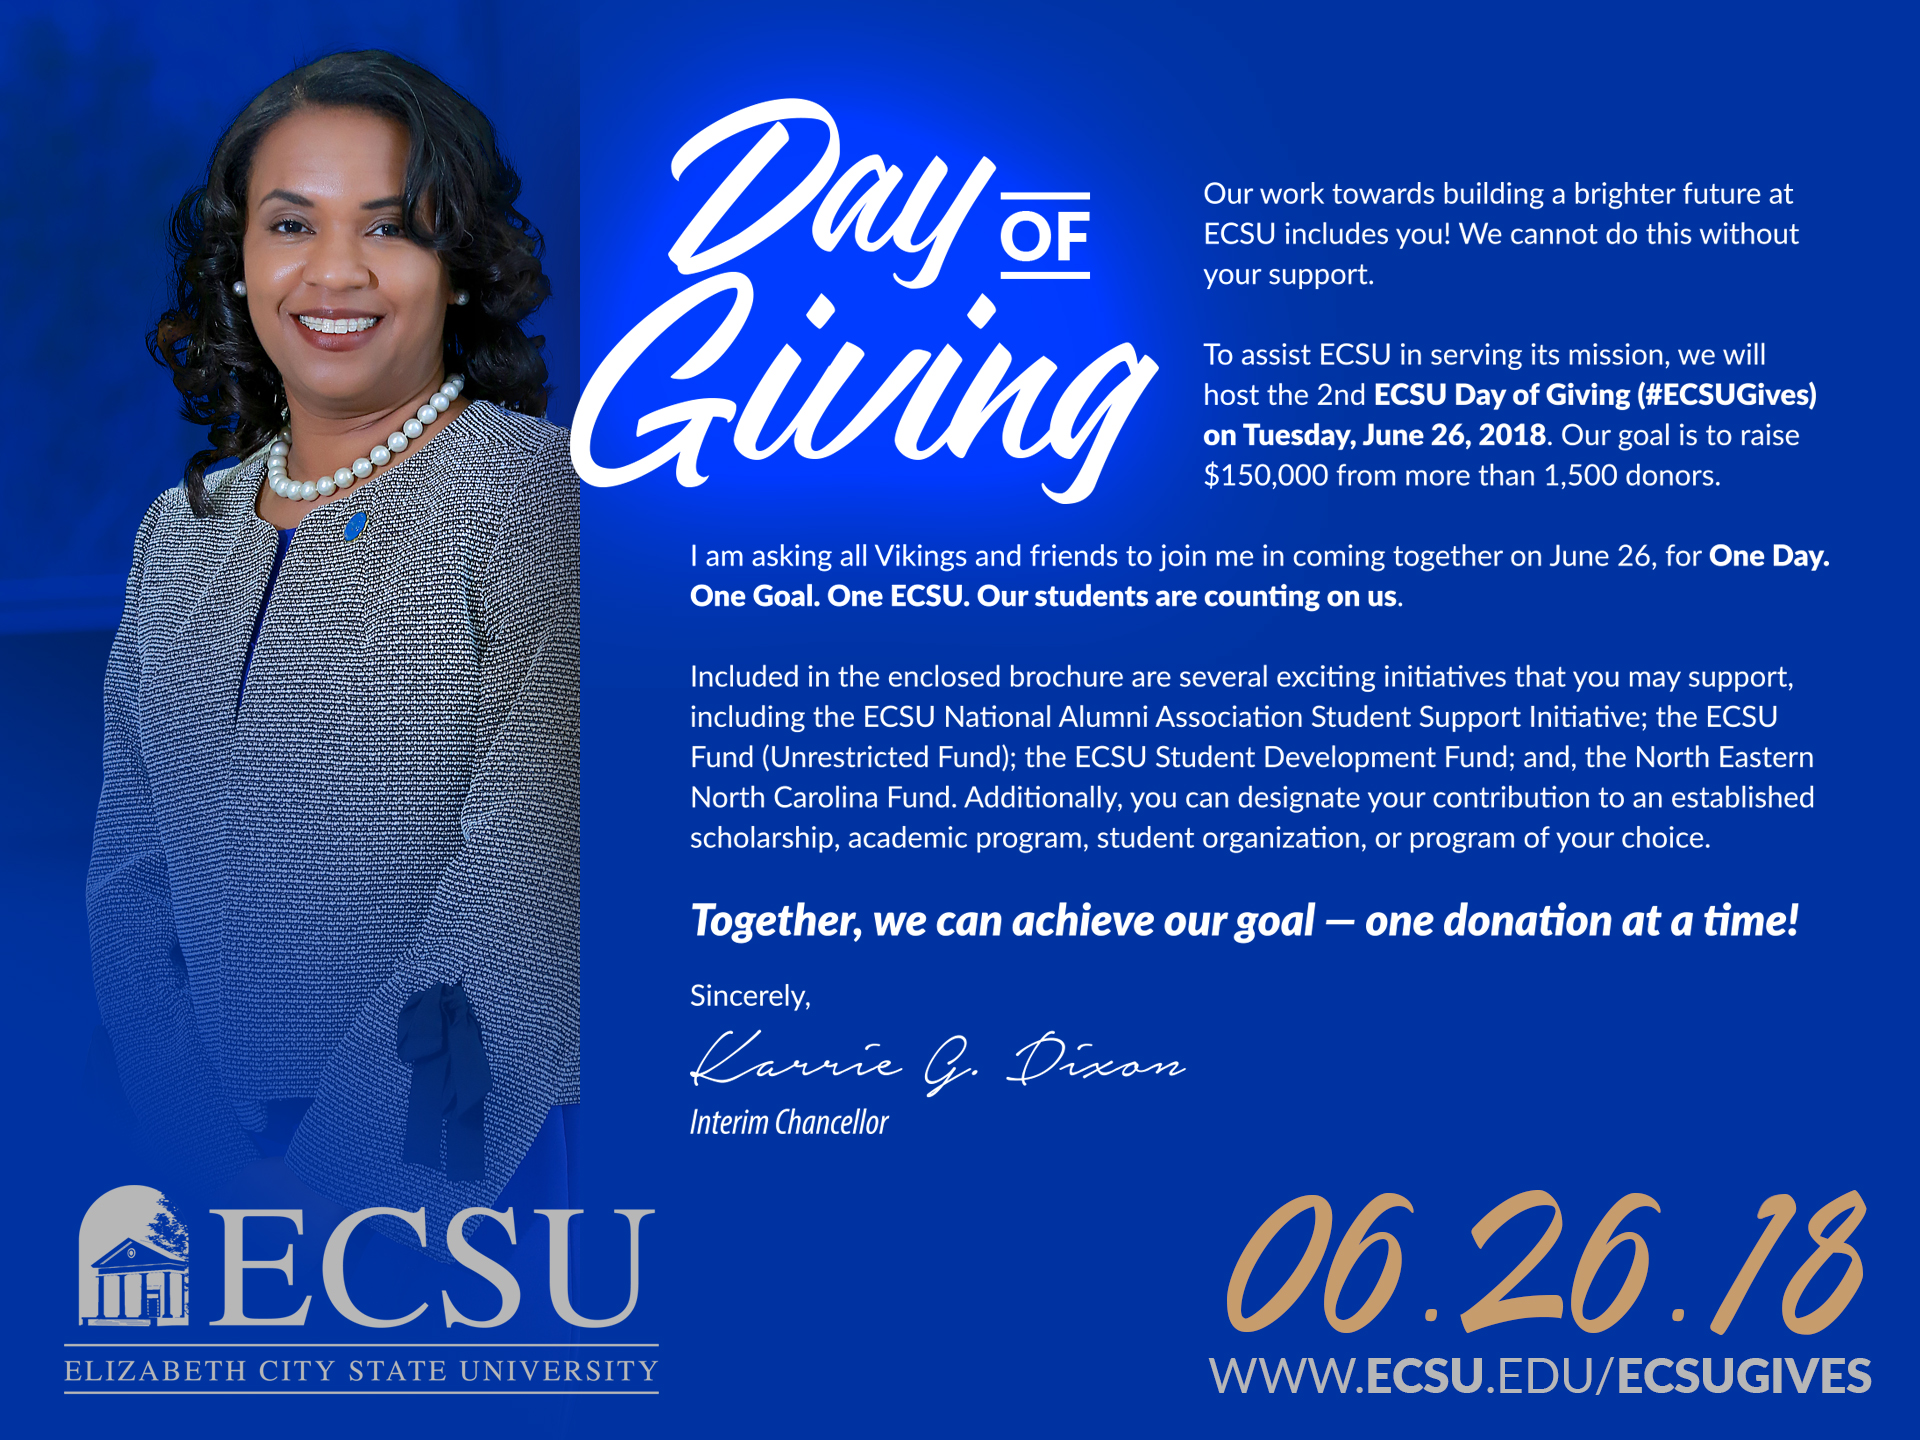 Ecsu day of giving chancellor message5